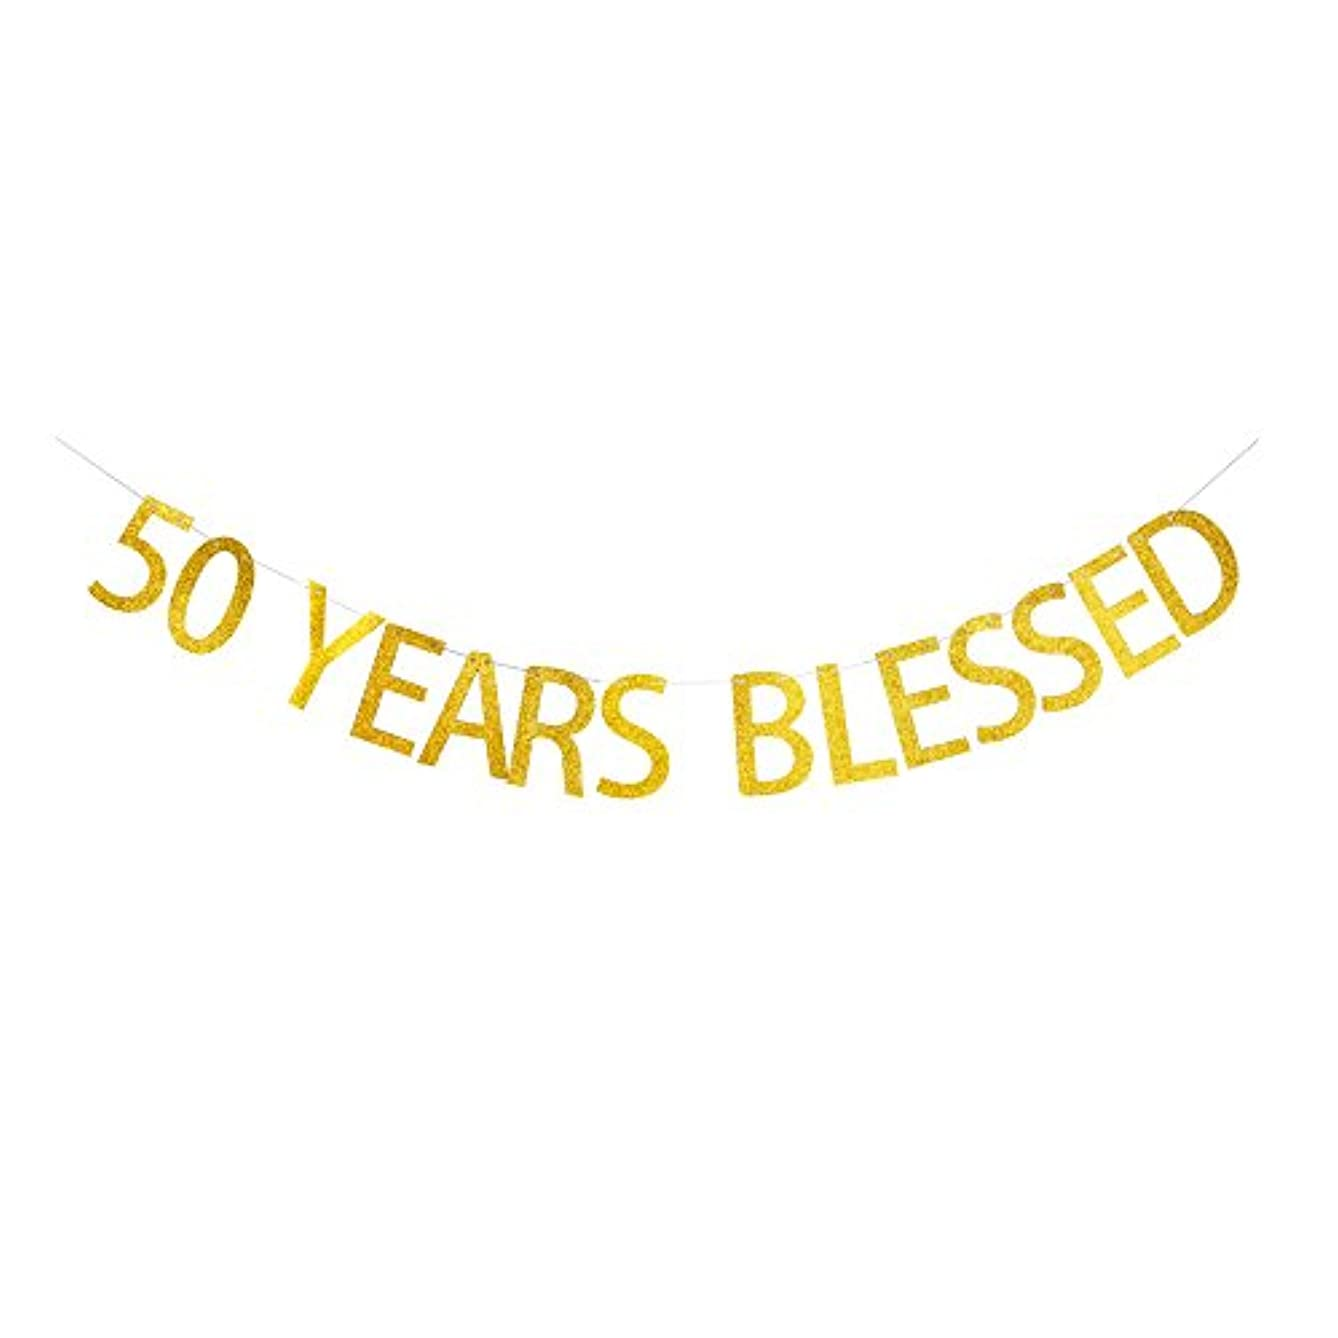 50 Years Blessed Banner Gold Gliter Paper Sign for 50th Birthday/Wedding Anniversary Party Decorations v441053619786774